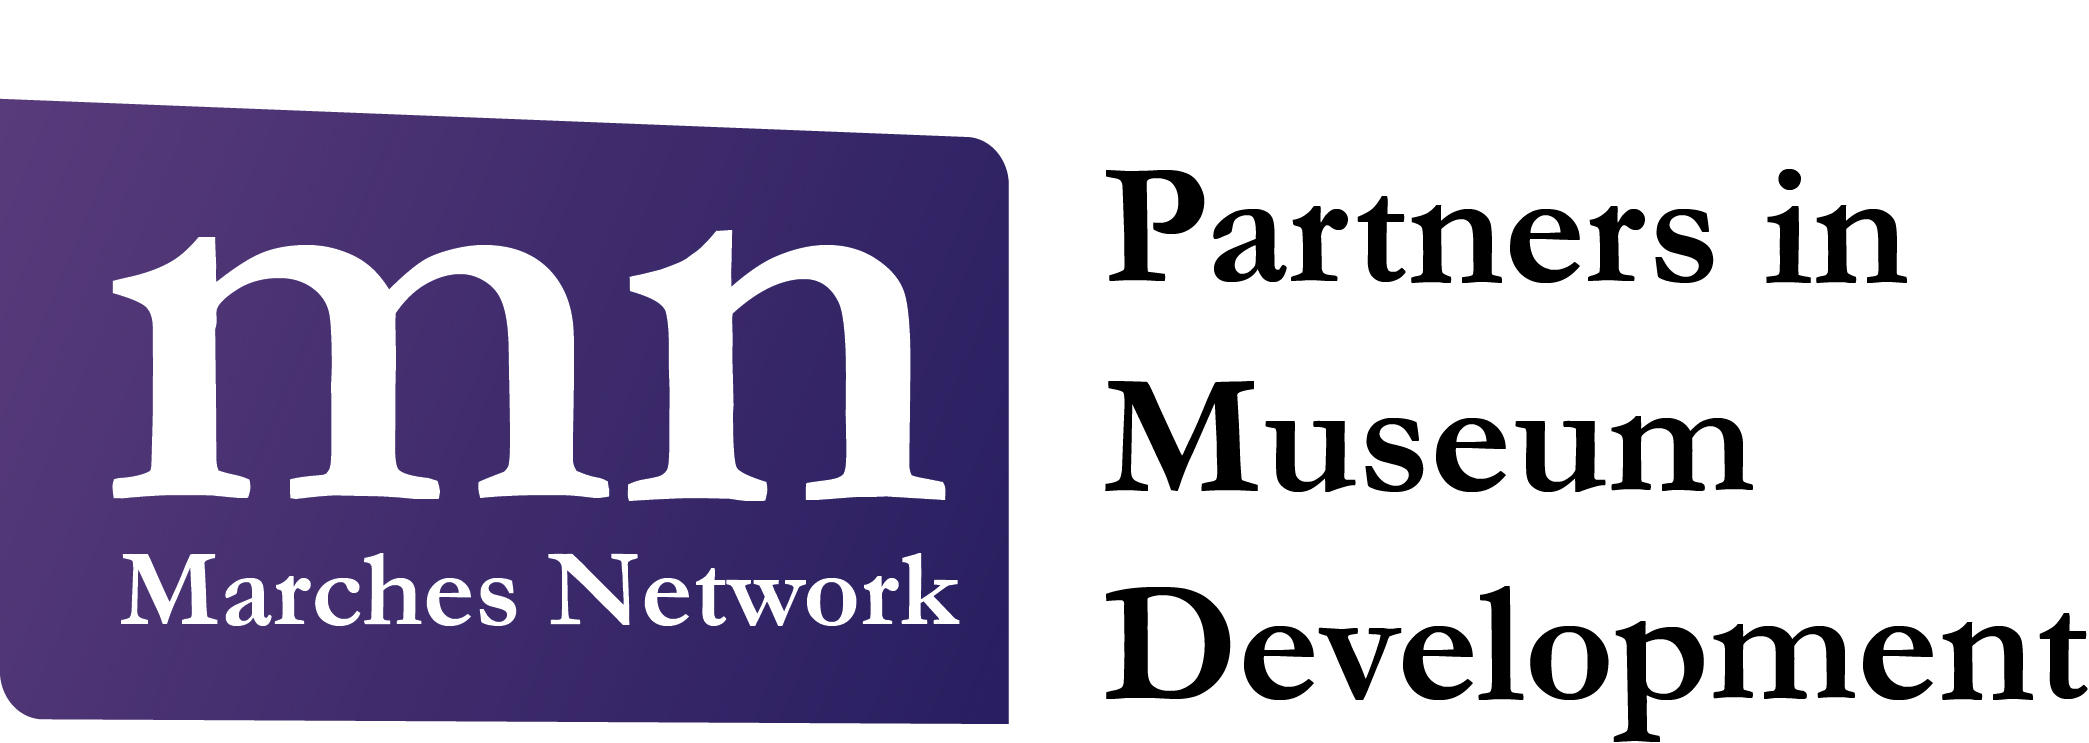 Marches-network-logo